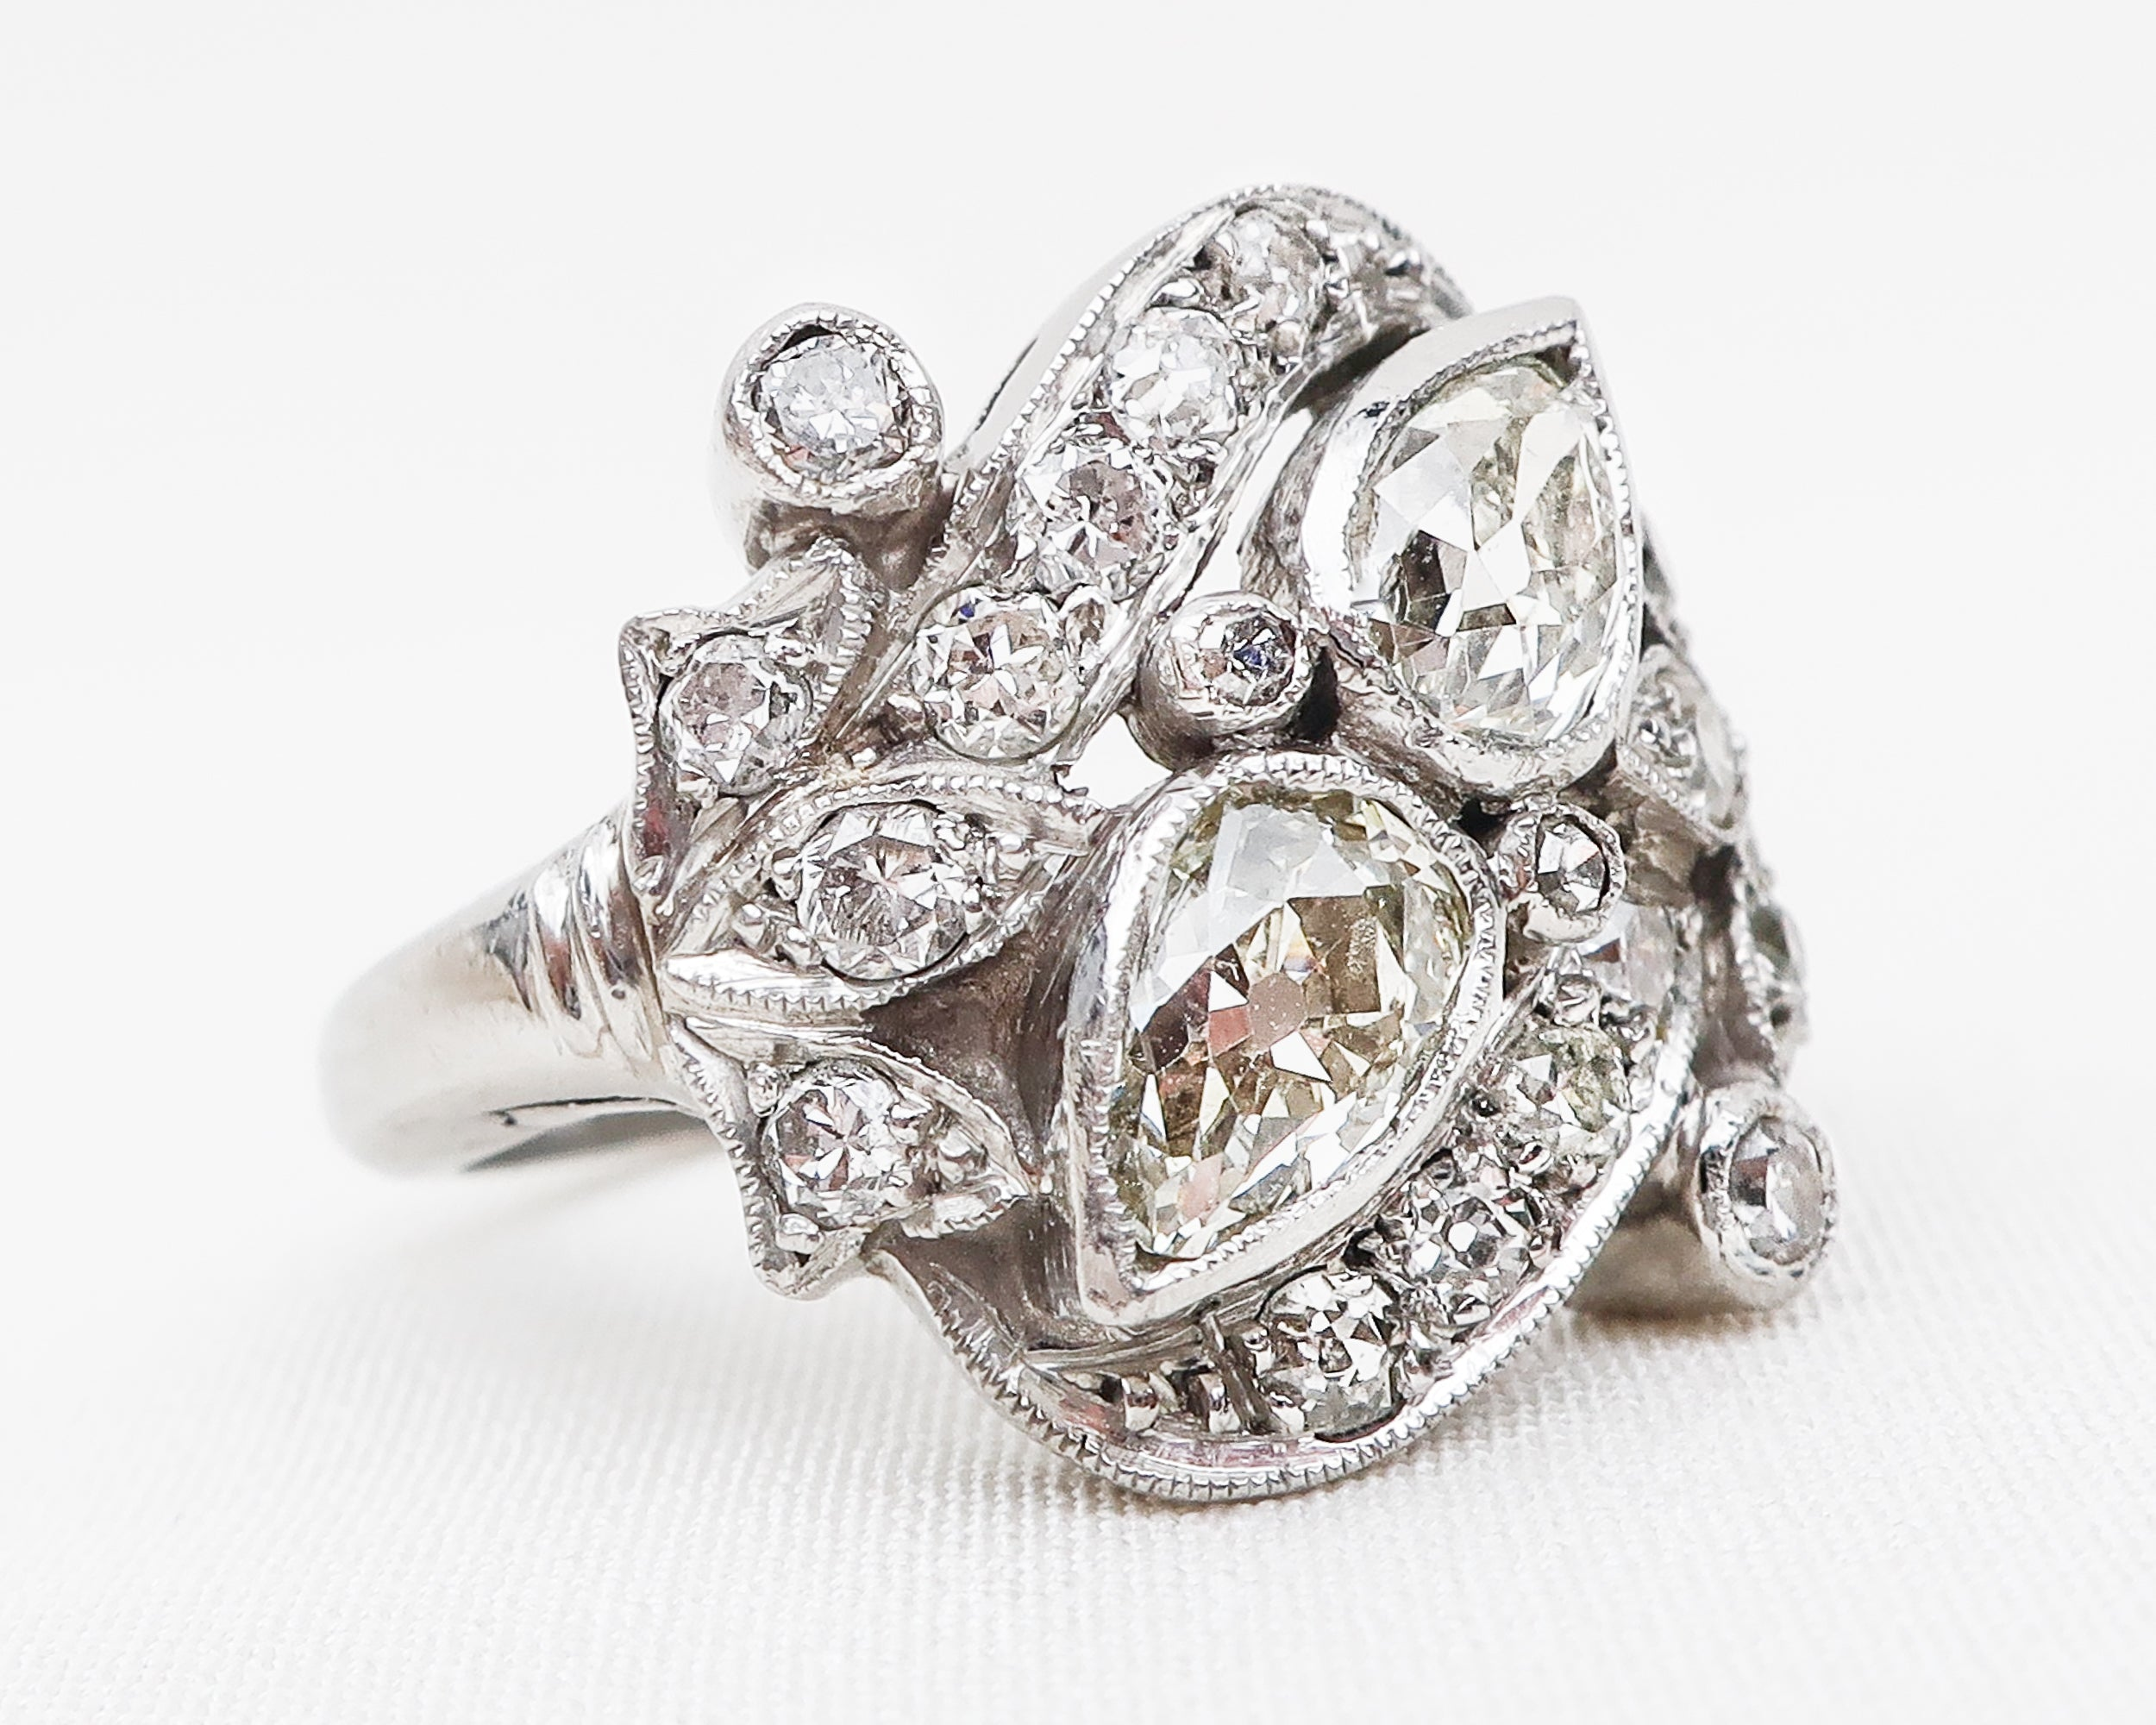 Art Deco Pear-Shaped Diamond Ring